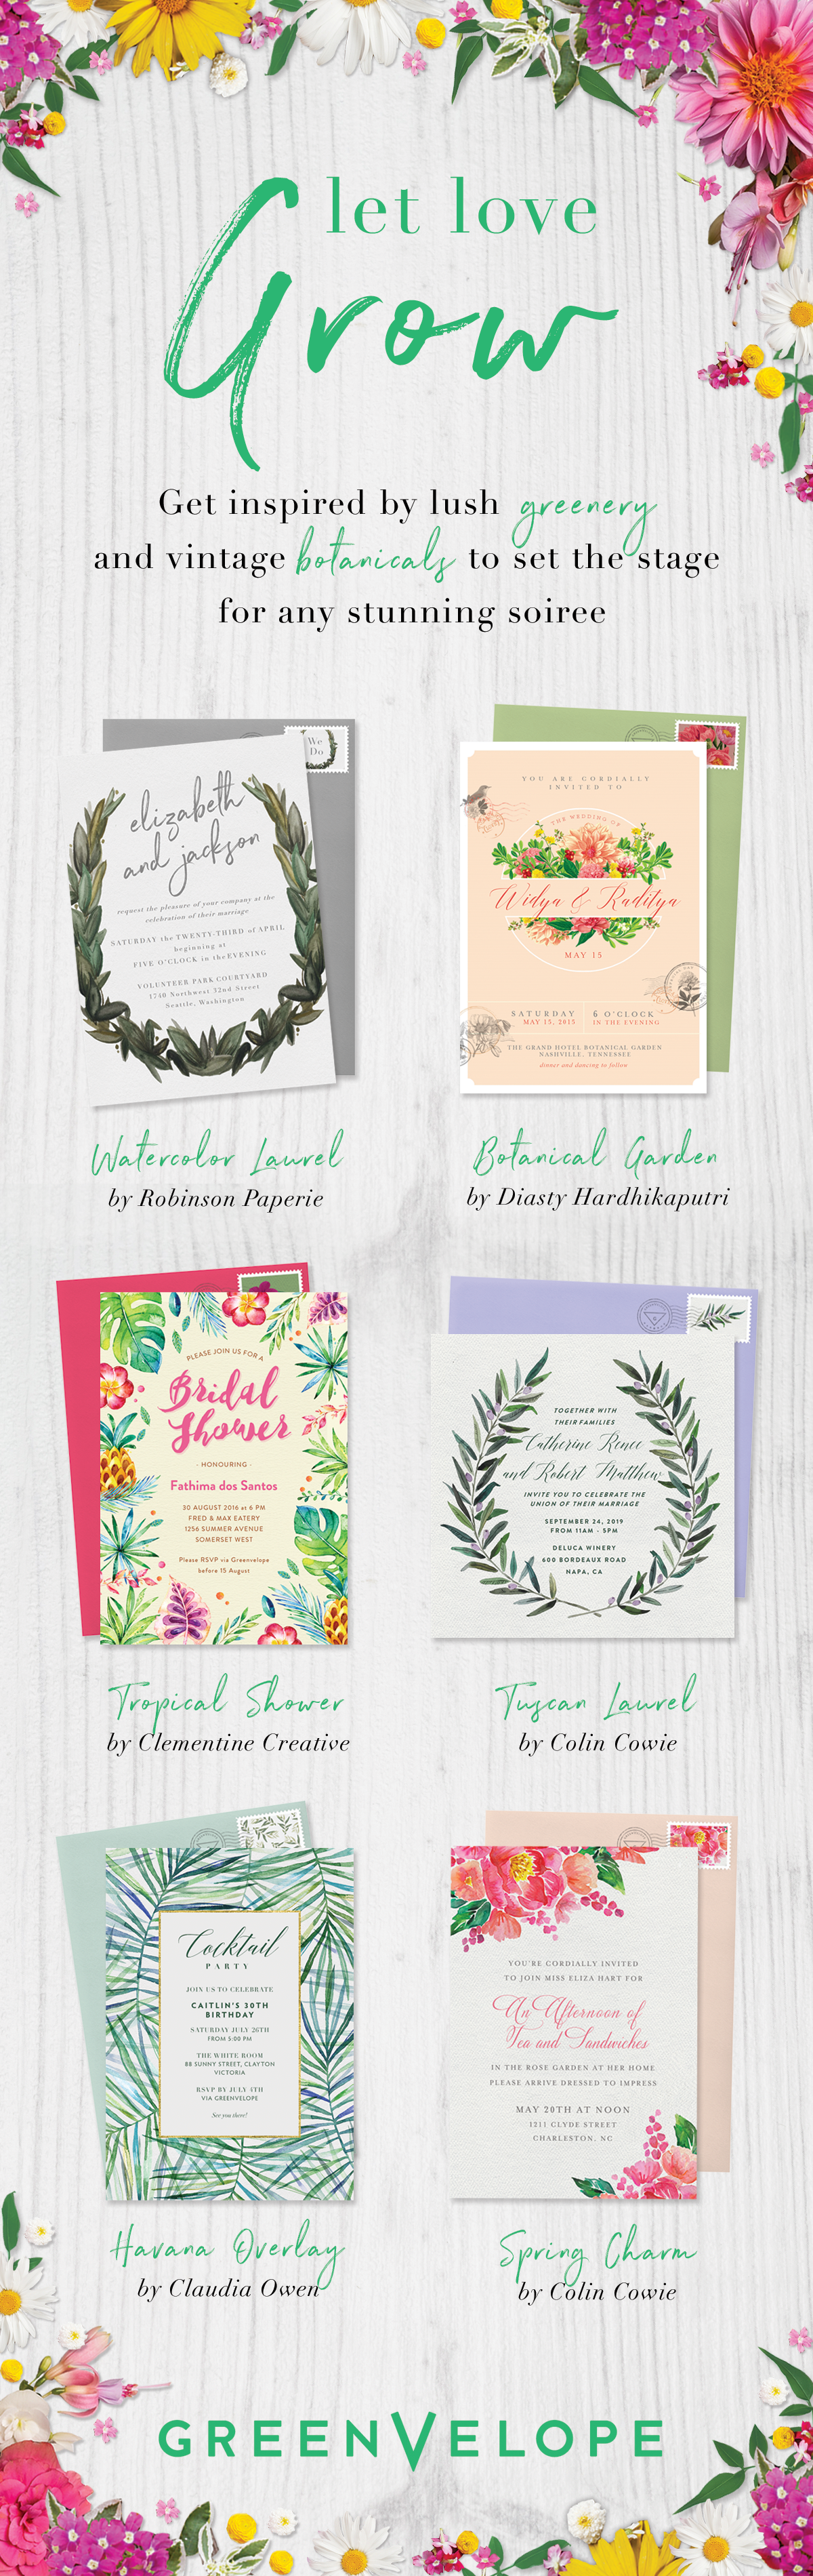 Let love bloom with a garden inspired wedding theme. Greenvelope ...